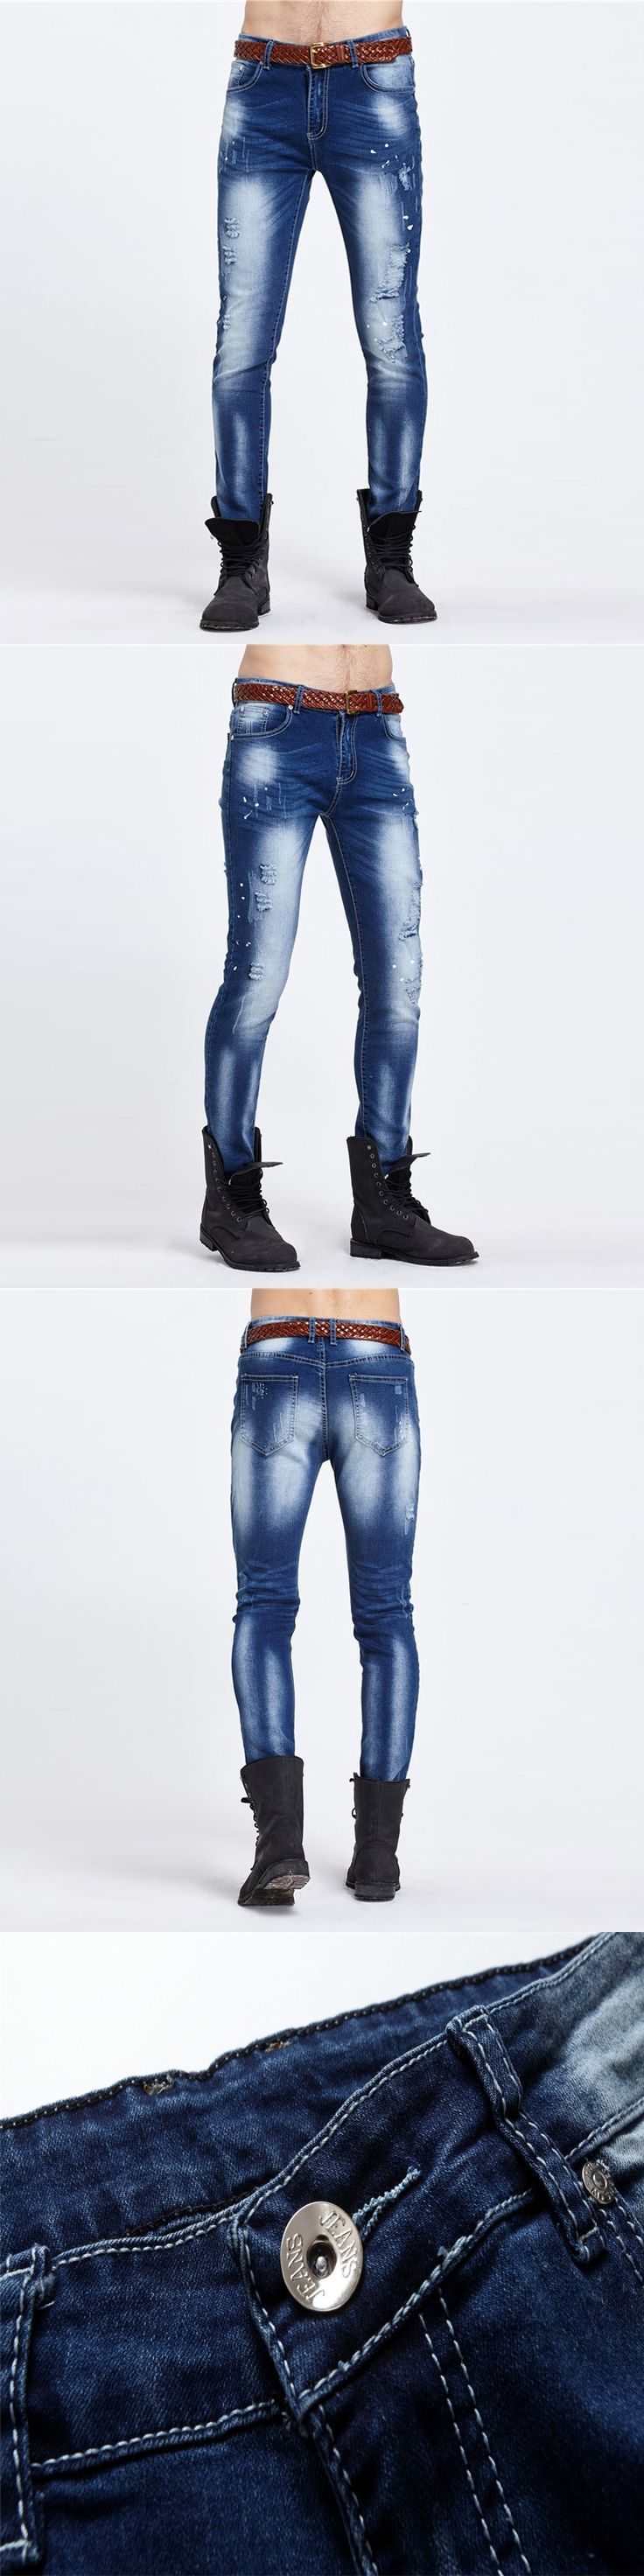 Night Club Biker Jeans Men Denim Blue Ripped Jeans Trousers Cotton Mens Brand Skinny Jeans Pants Stretch Motorcycle Jeans Homme